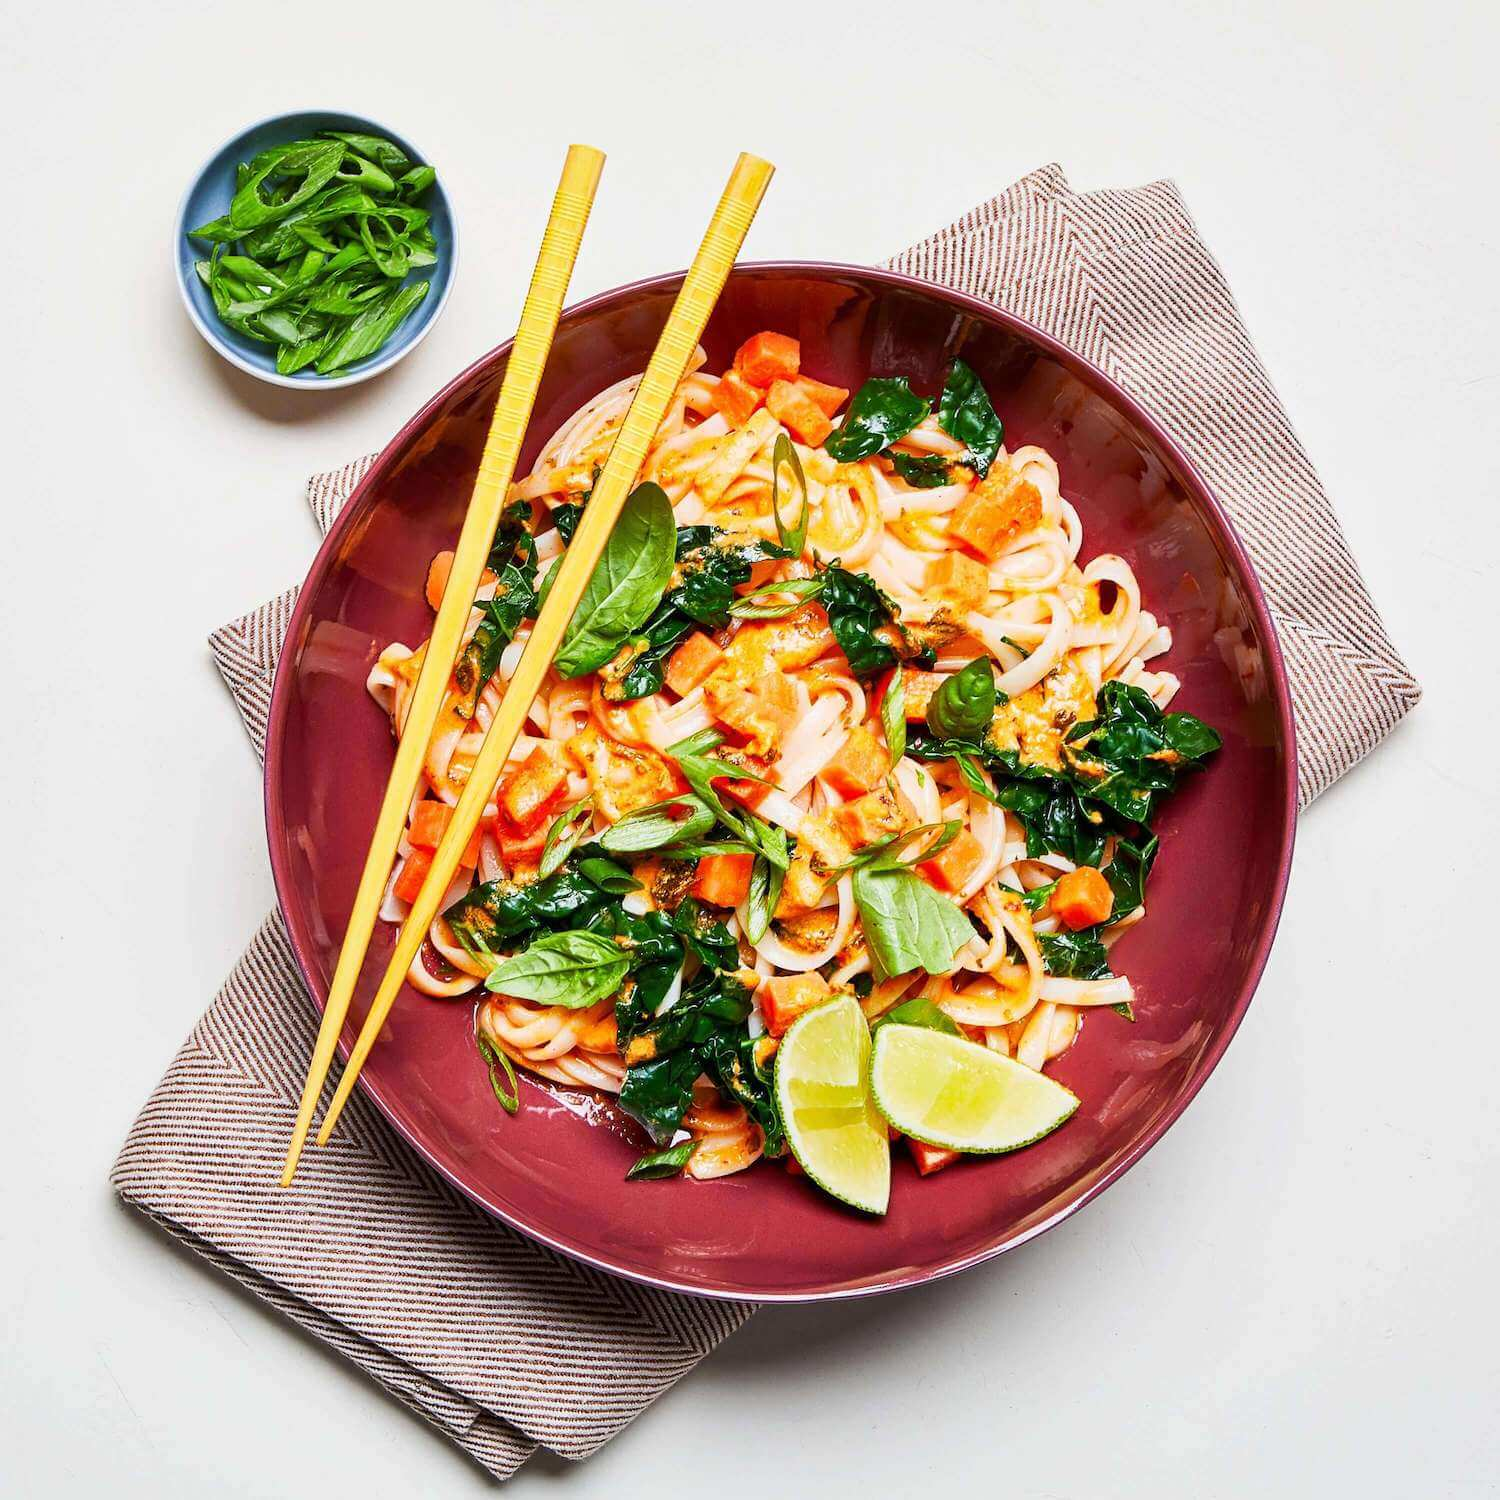 Red Curry Noodles in a dish with chopsticks, a napkin, and scallions on the table.